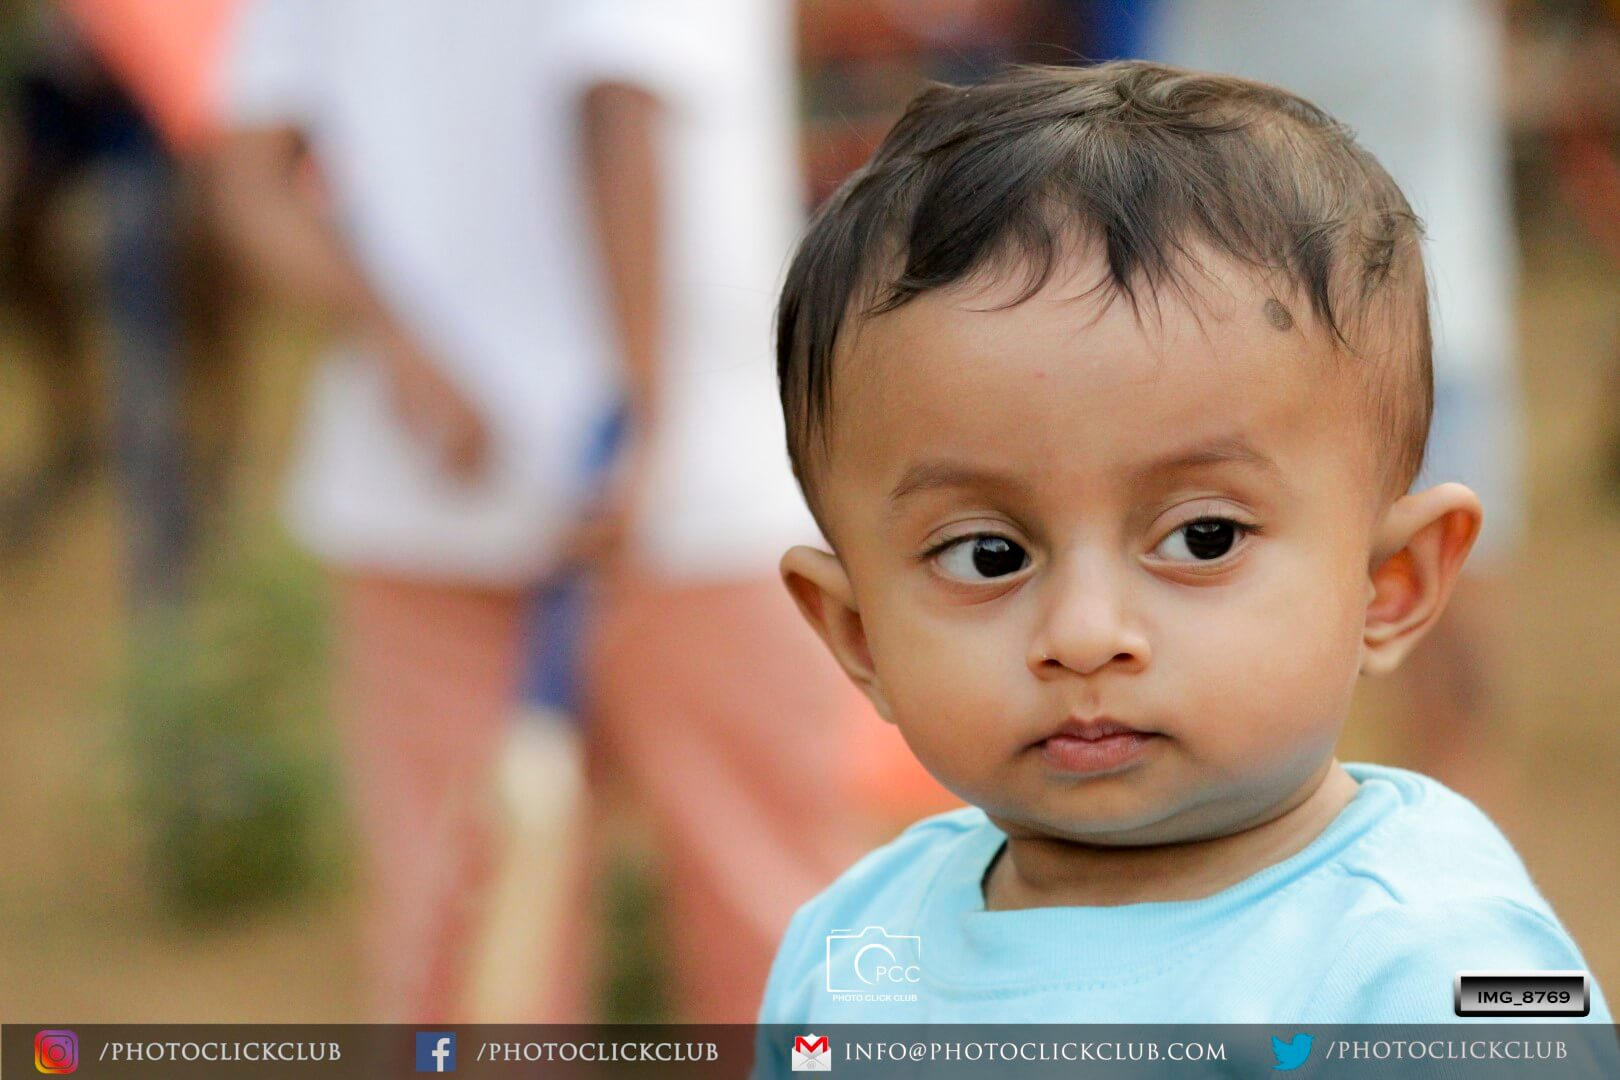 Innocent Baby - by photoclickclub